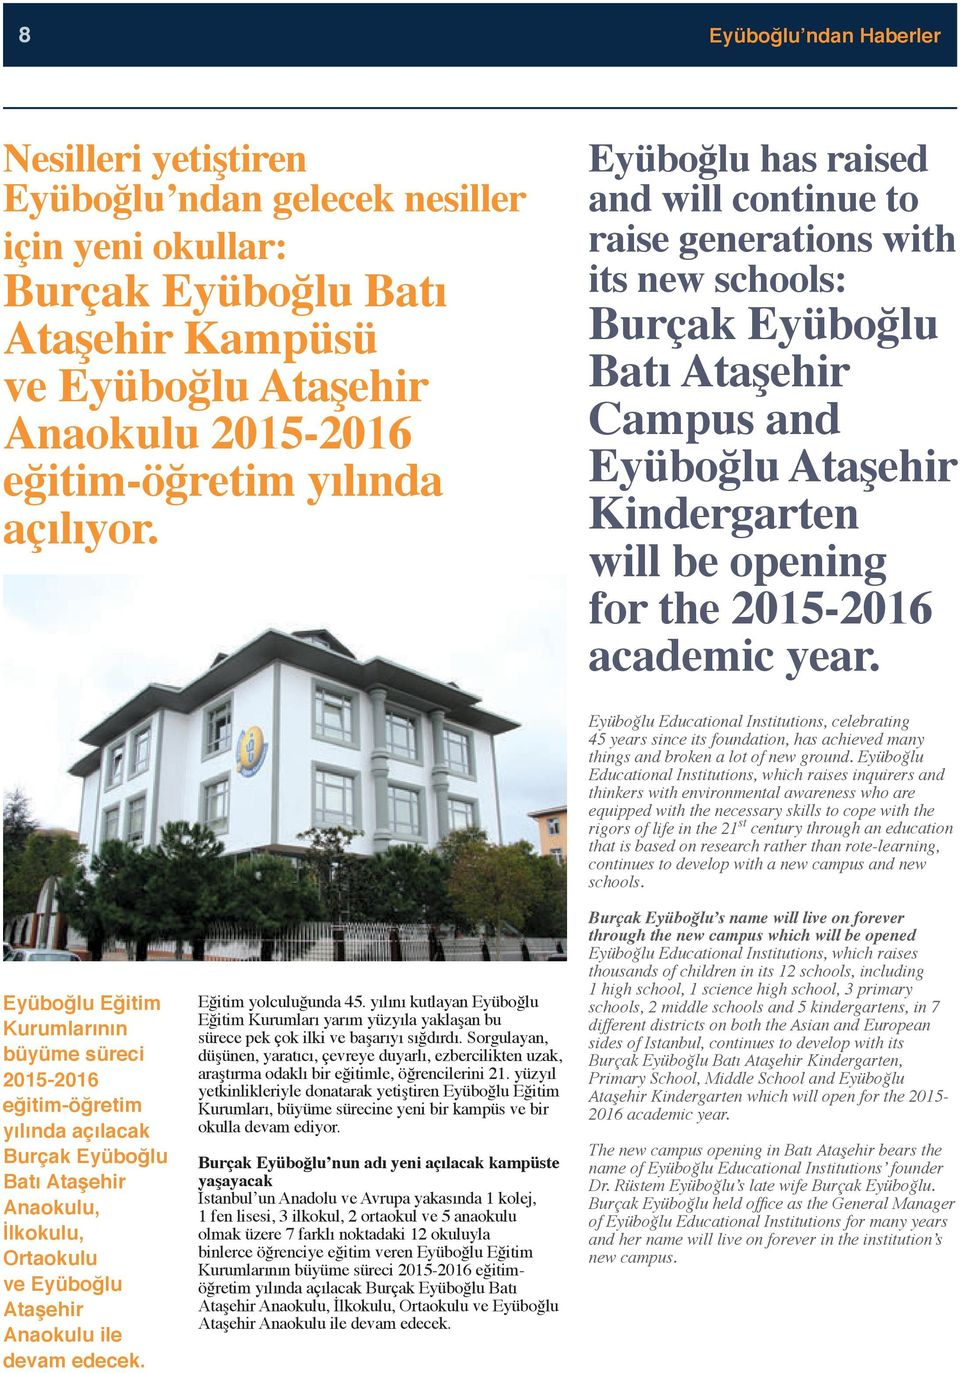 Eyüboğlu has raised and will continue to raise generations with its new schools: Burçak Eyüboğlu Batı Ataşehir Campus and Eyüboğlu Ataşehir Kindergarten will be opening for the 2015-2016 academic